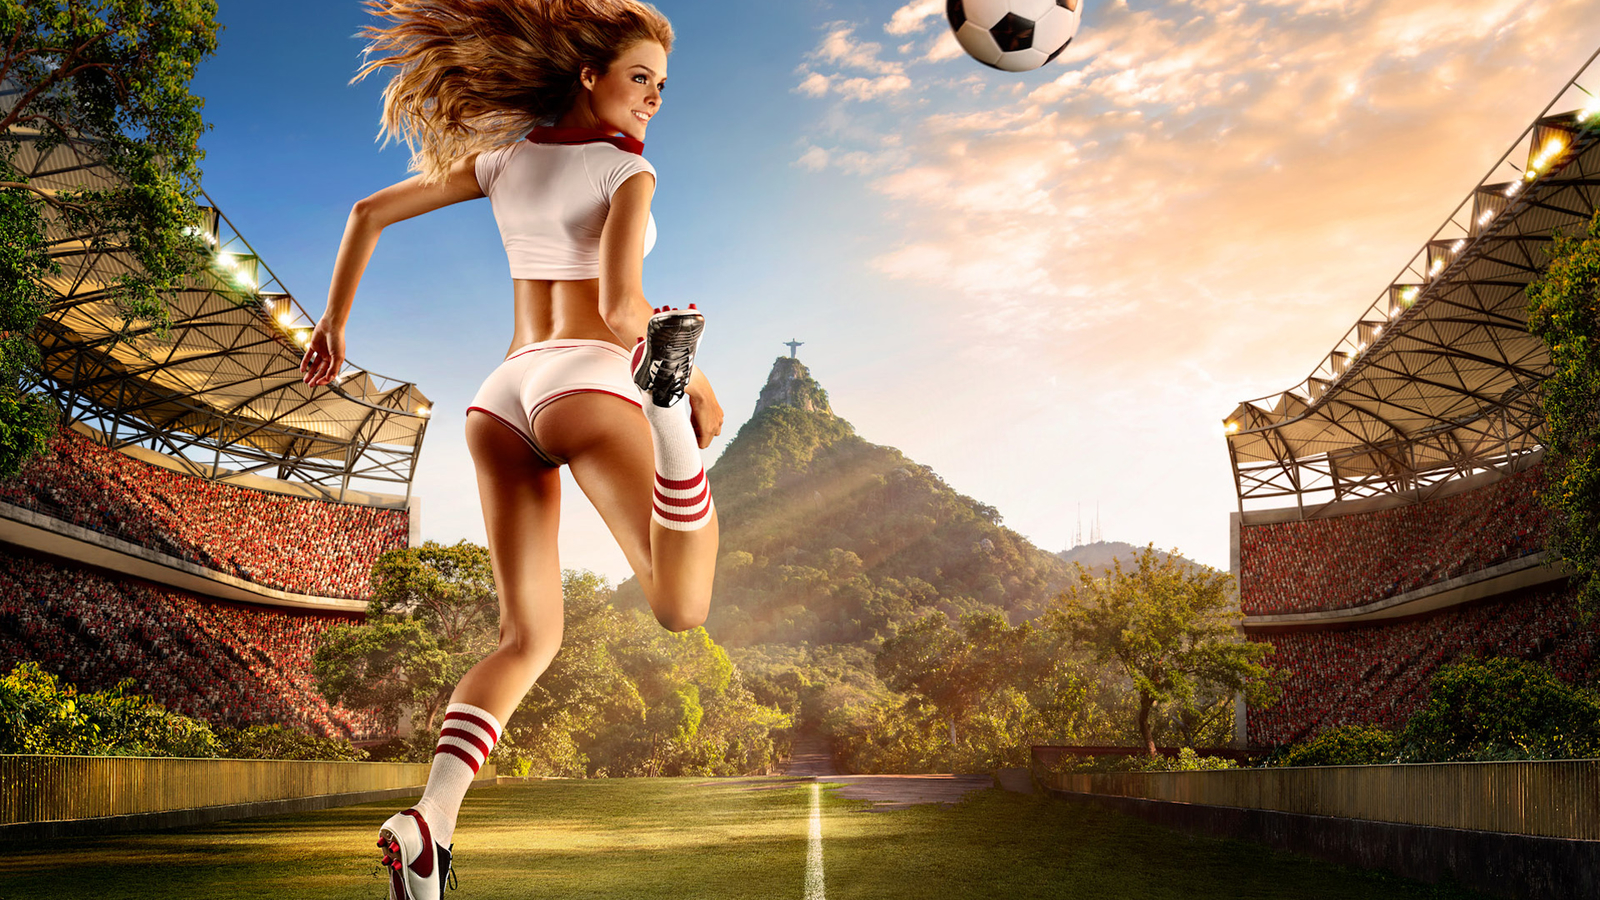 World Cup calendar wallpaper 49635